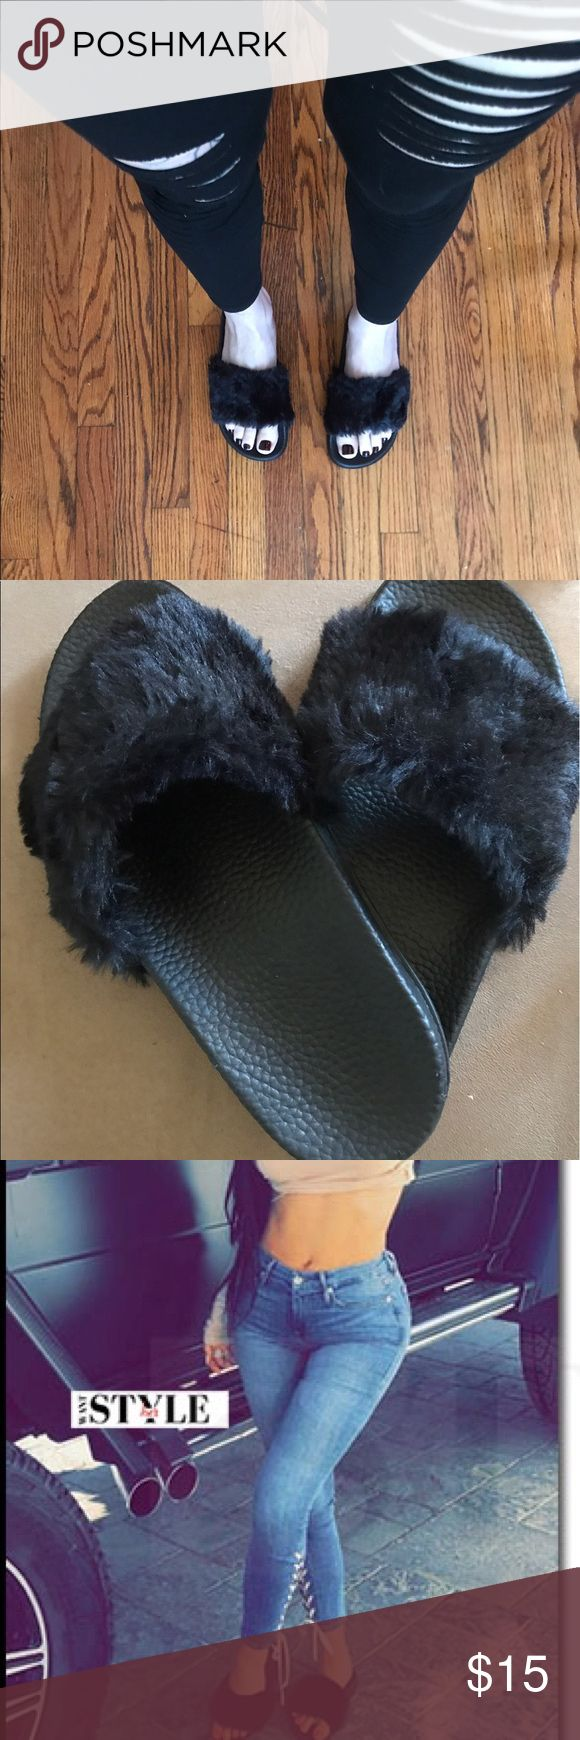 Kylie/Rihanna • • black fur sandals {slides} Black on black furry sandal slides. The same style can be seen (often!) on Kylie Jenner or Khloe Kardashian. These look just like the pricy Rihanna Fenty Puma sandals. These are insanely comfy and the fur is soft. The sole is a grippy rubber-feeling material and is flat, though has a small bit of hight to it, about half an inch. These are made even more comfortable by the way they sort of mold around your feet. Size 6.  😮Side Note! These AREN'T…